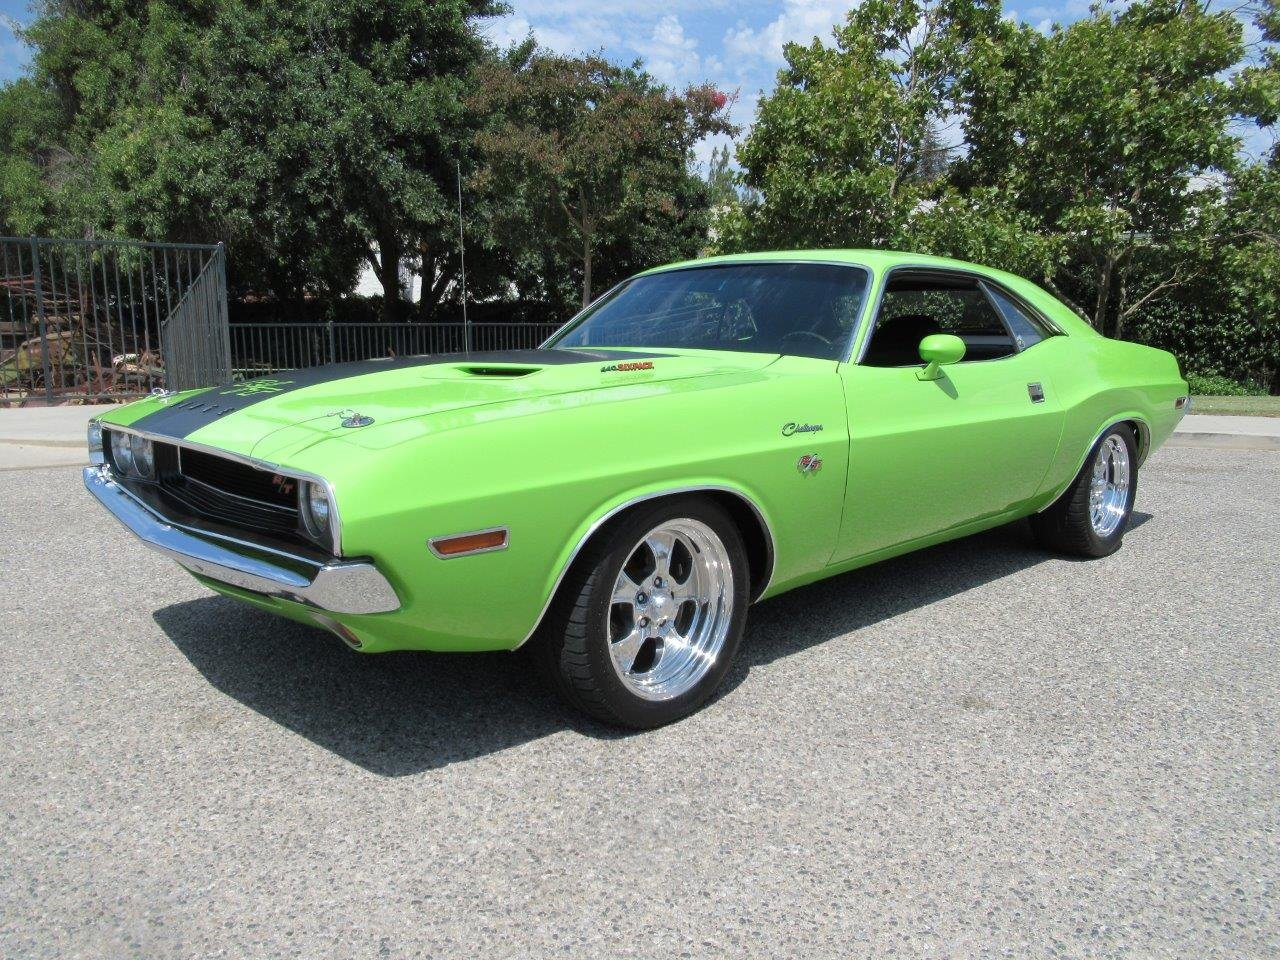 1970 DODGE CHALLENGER For Sale (picture 1 of 6)